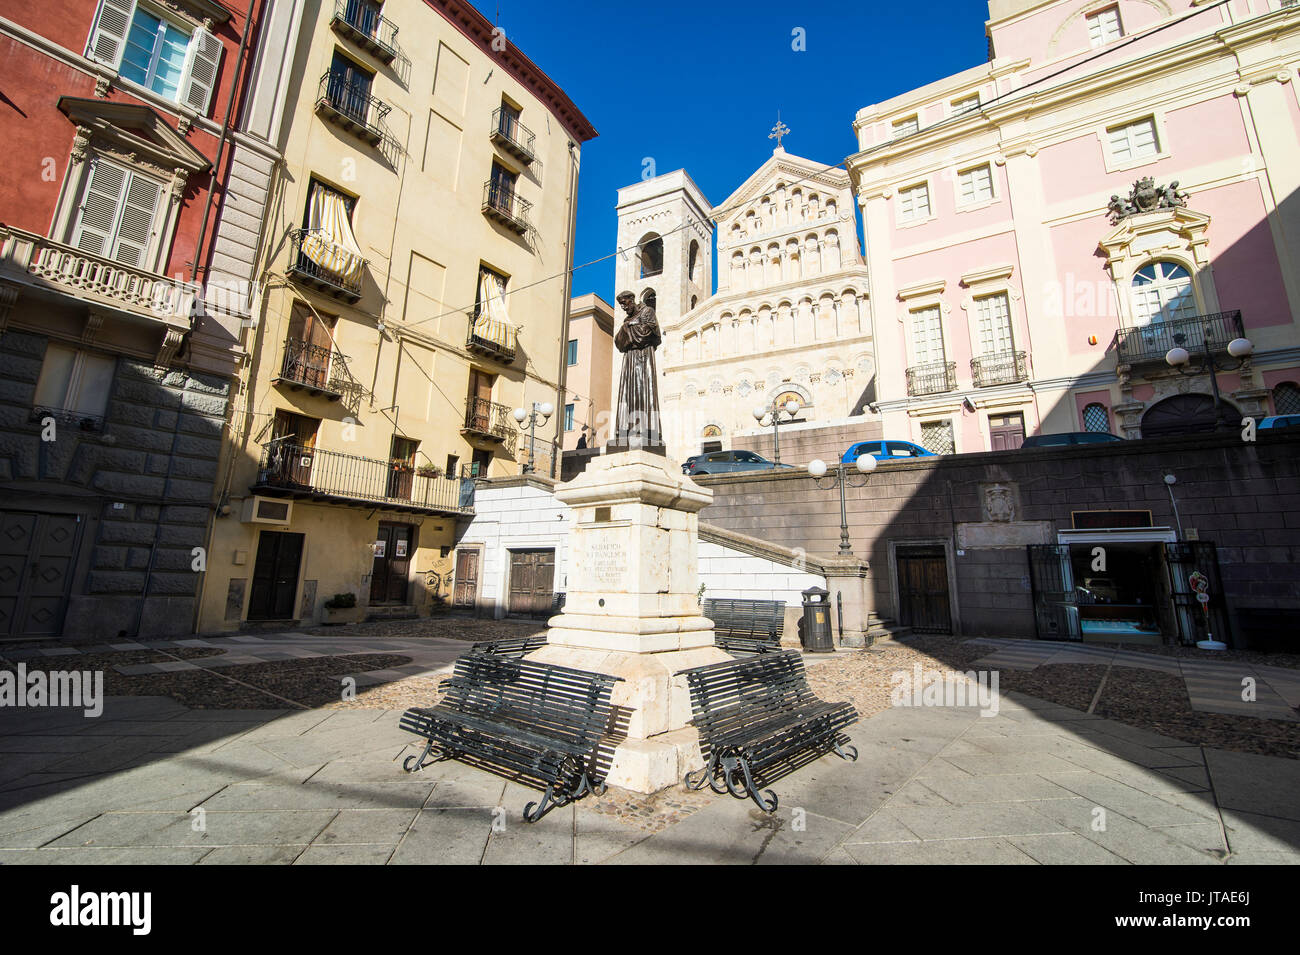 Carlo Alberto square in front of the cathedral of Cagliari, Sardinia, Italy, Europe - Stock Image